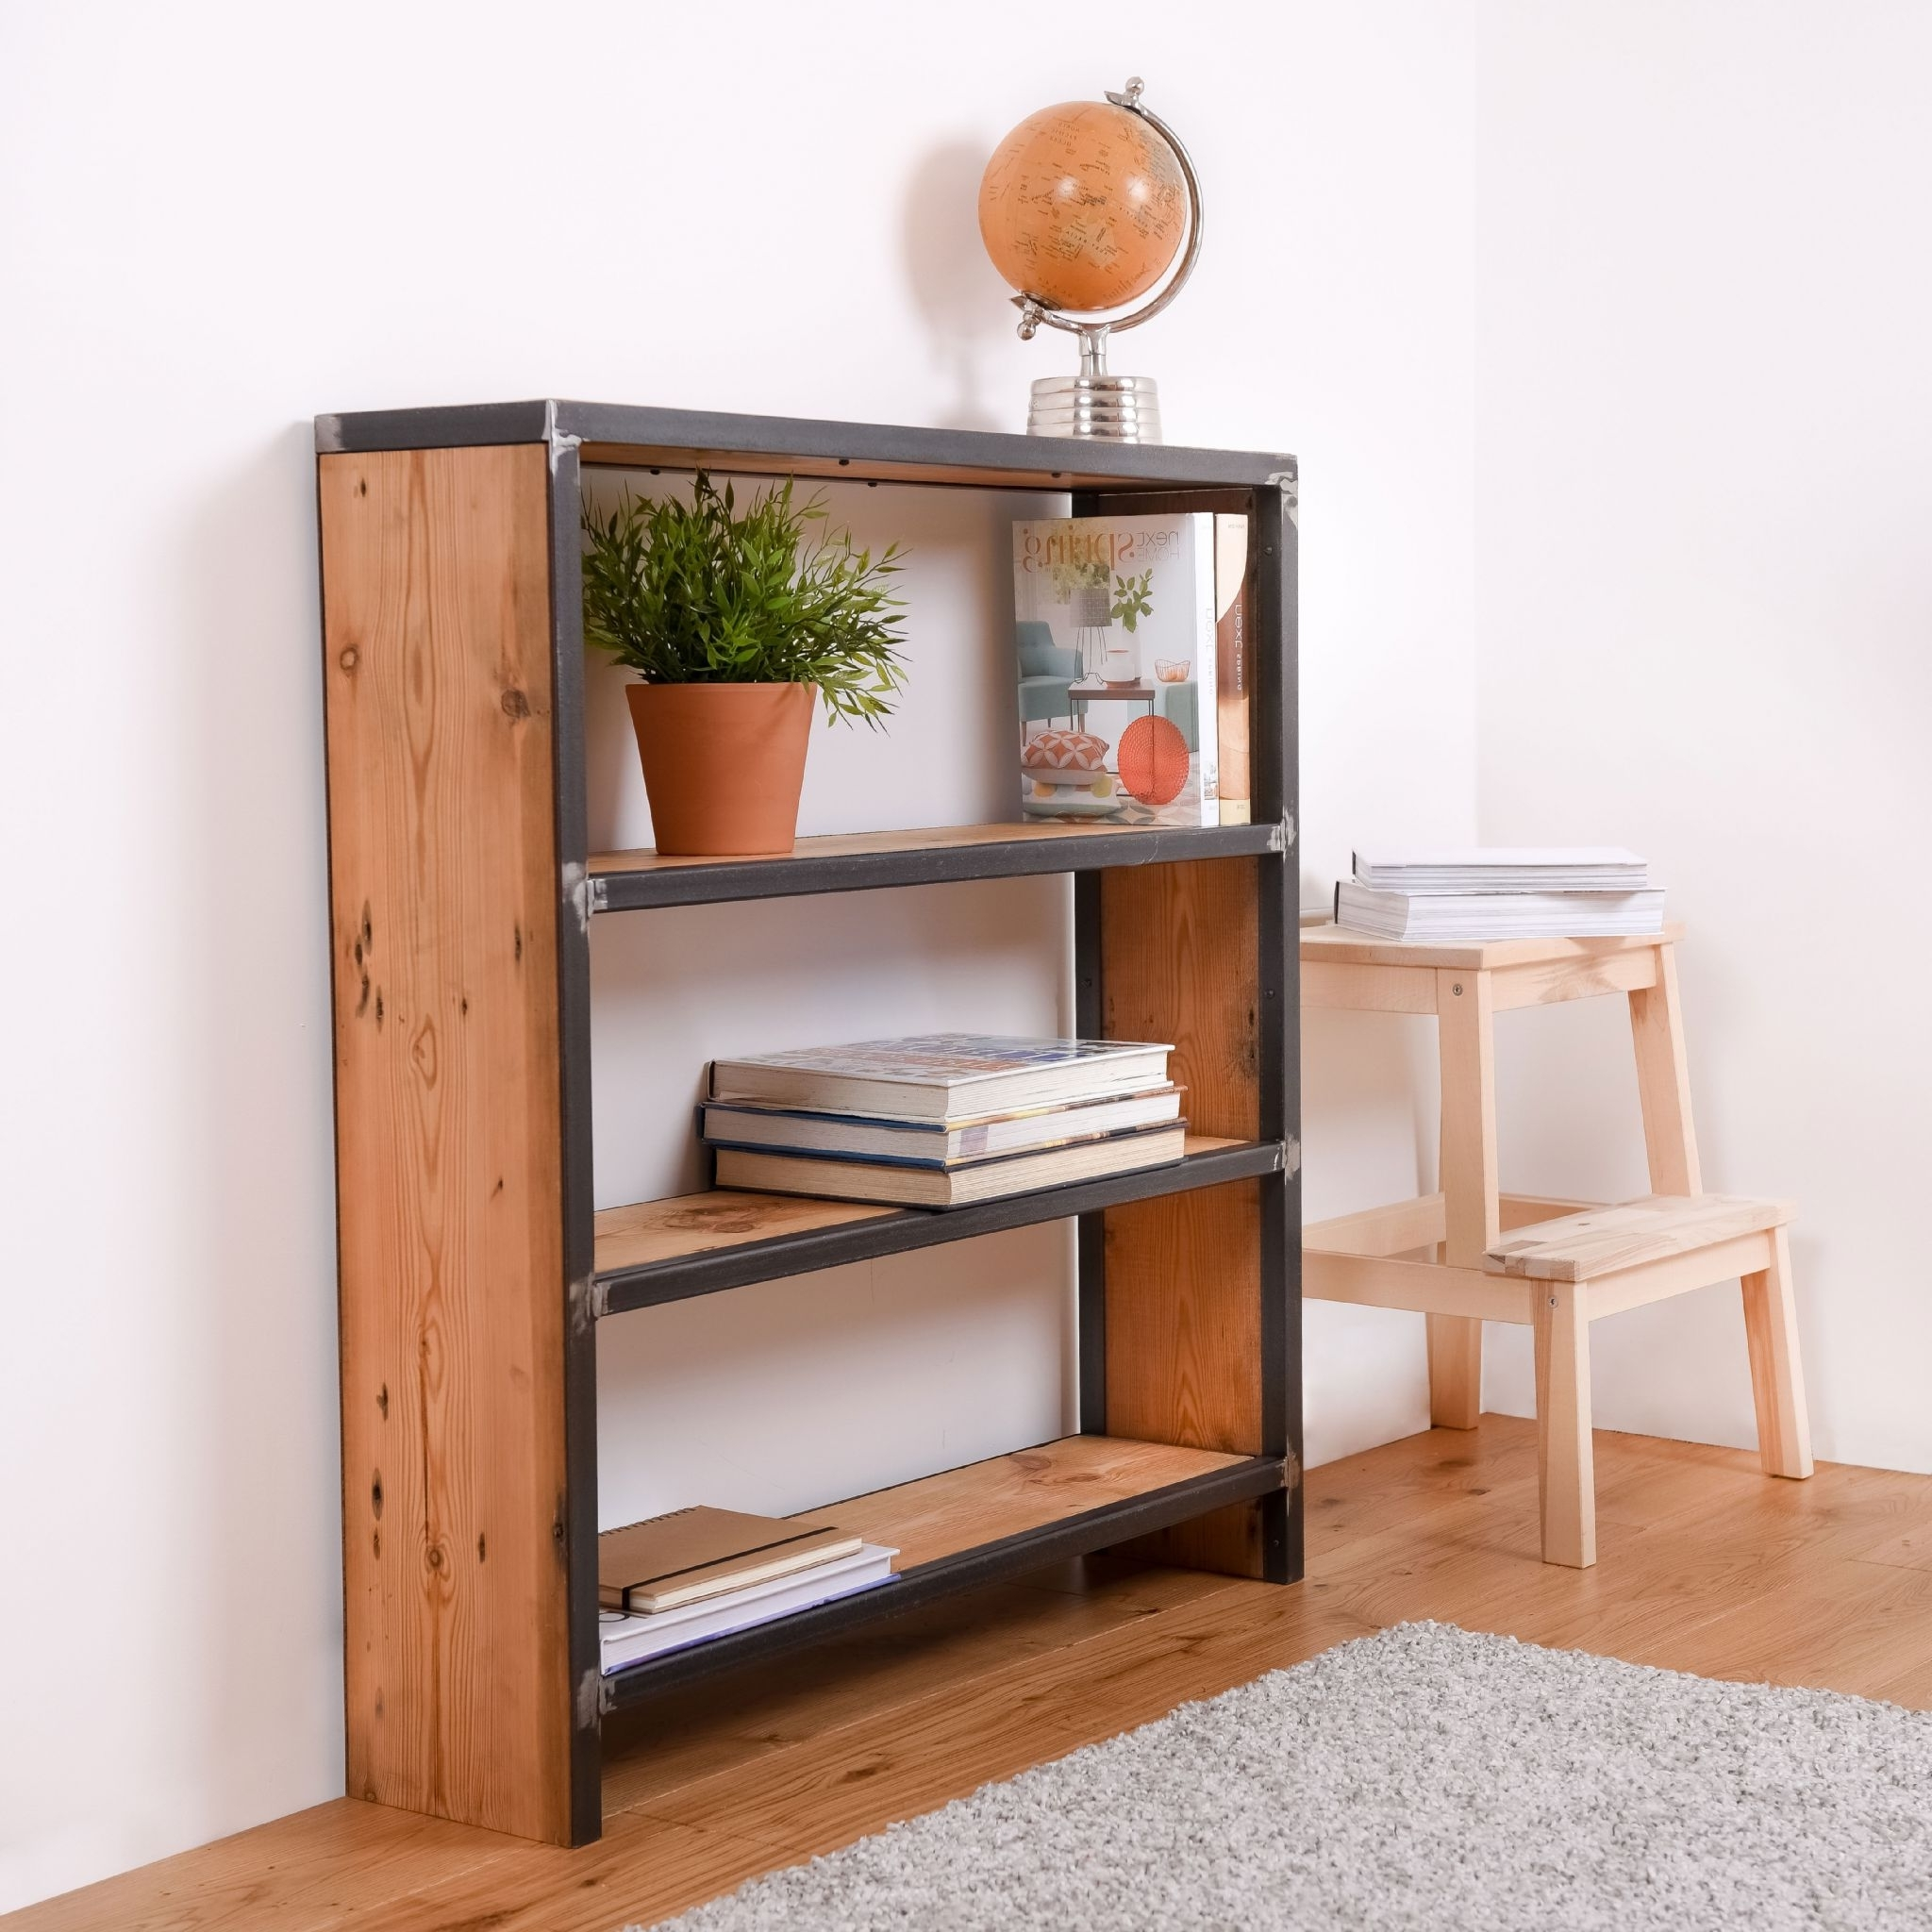 Reclaimed Wood Bookcases With Well Liked Reclaimed Wood And Steel Industrial Bookcase (View 12 of 15)